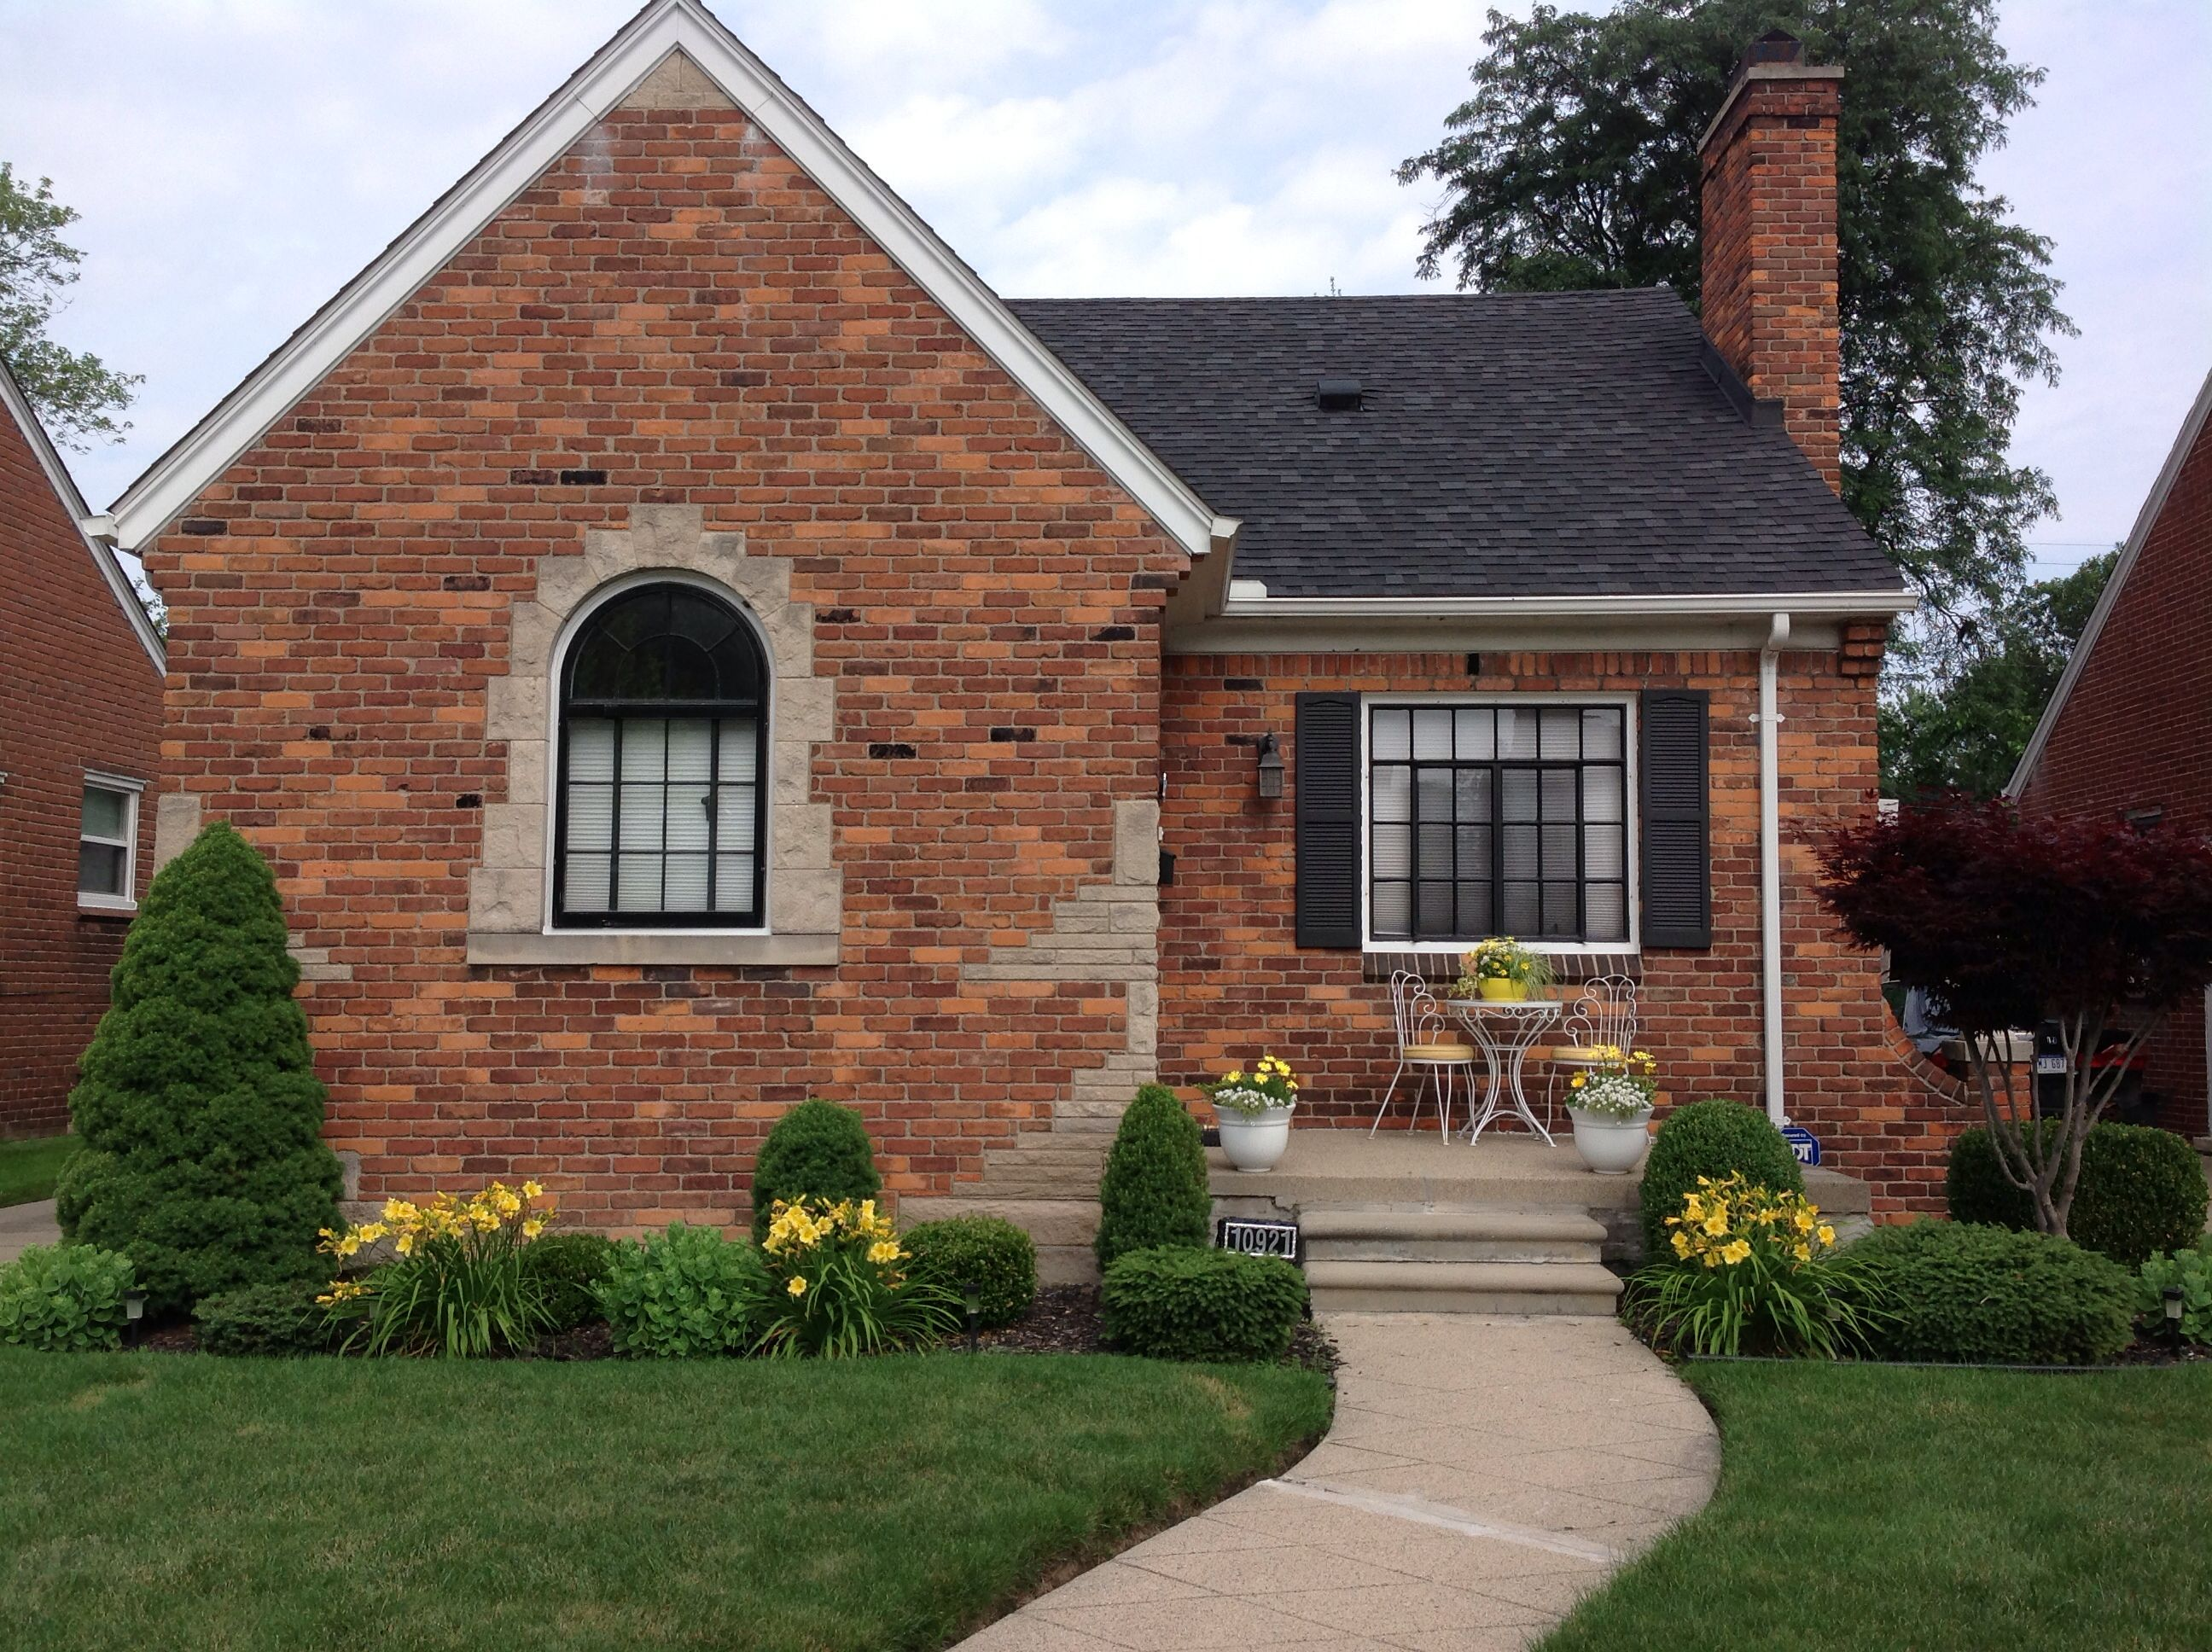 This Is My 1939 Brick Bungalow In Detroit MI I Am